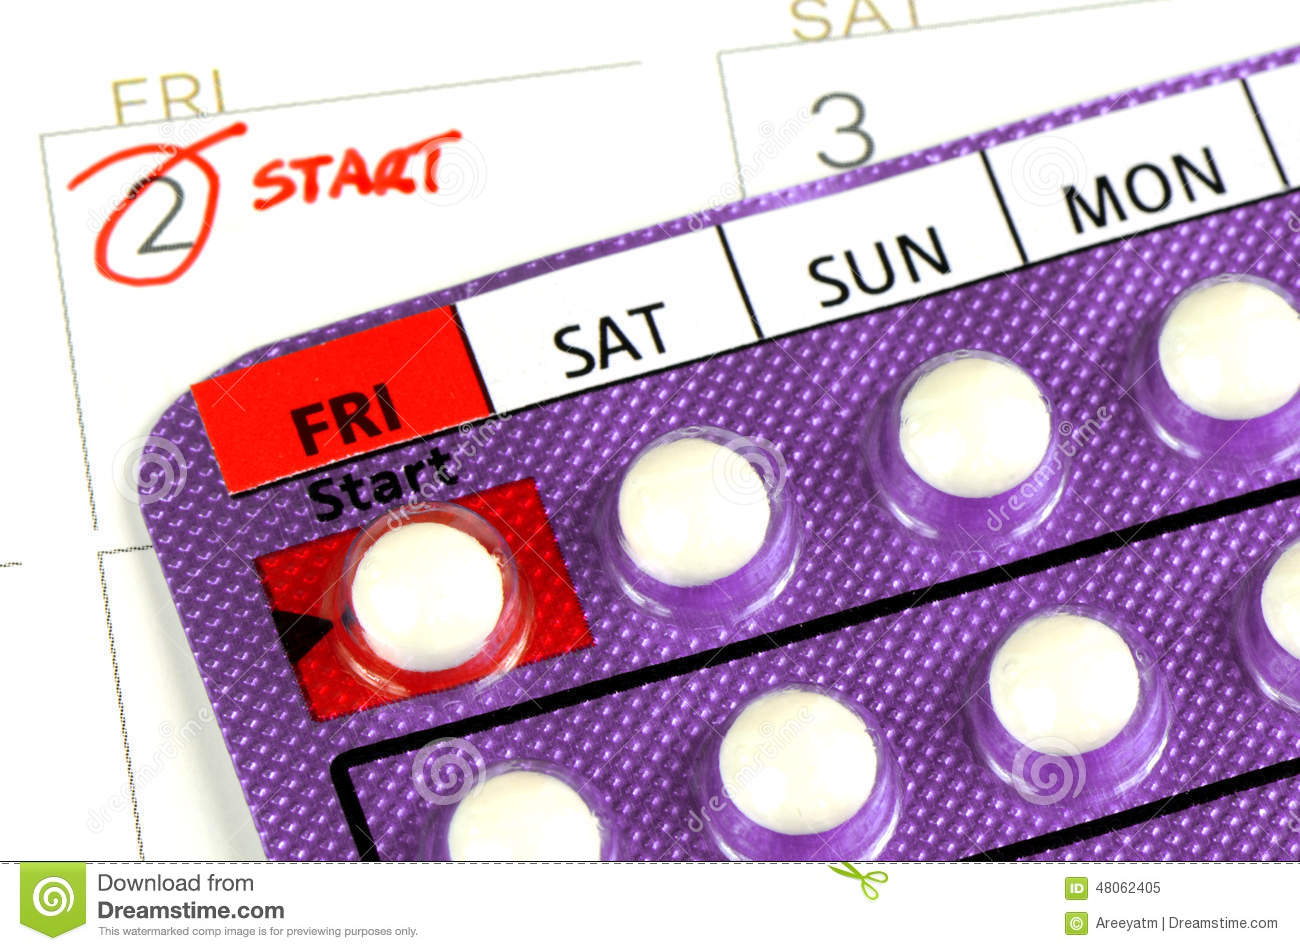 Contraceptive Pill On The Calendar. Stock Photo - Image: 48062405